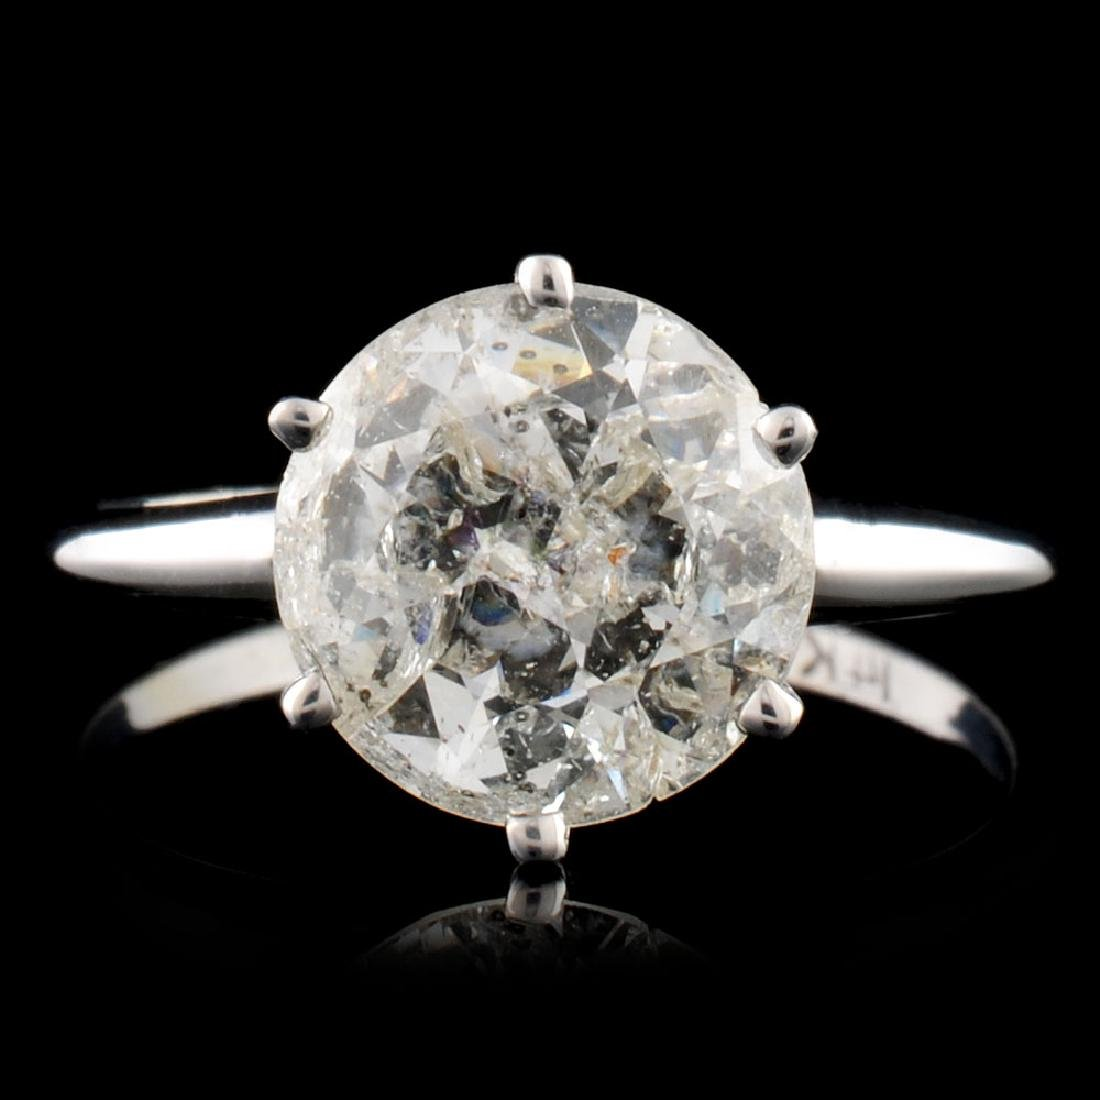 14K Gold 2.21ct Solitaire Diamond Ring